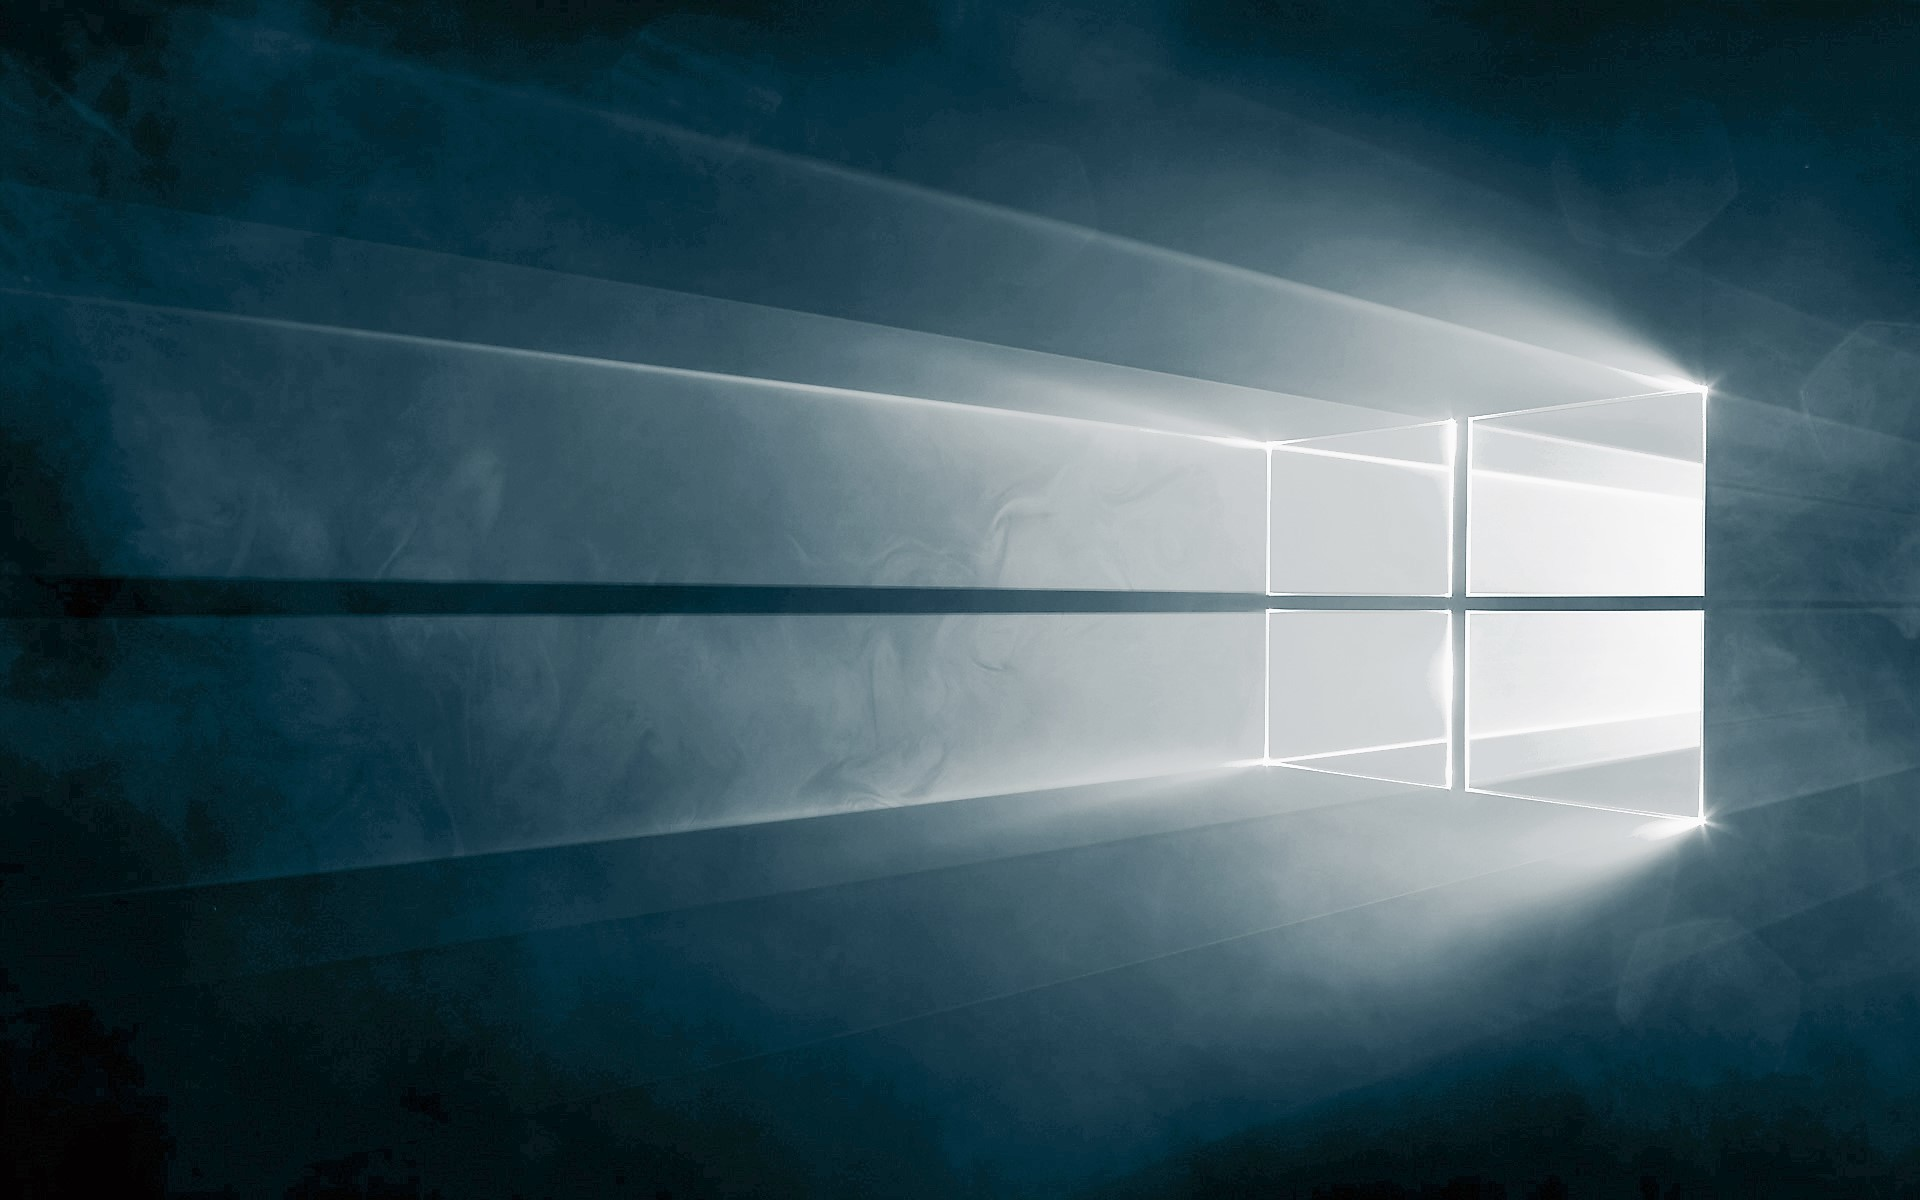 animated wallpaper on windows 10 60 images